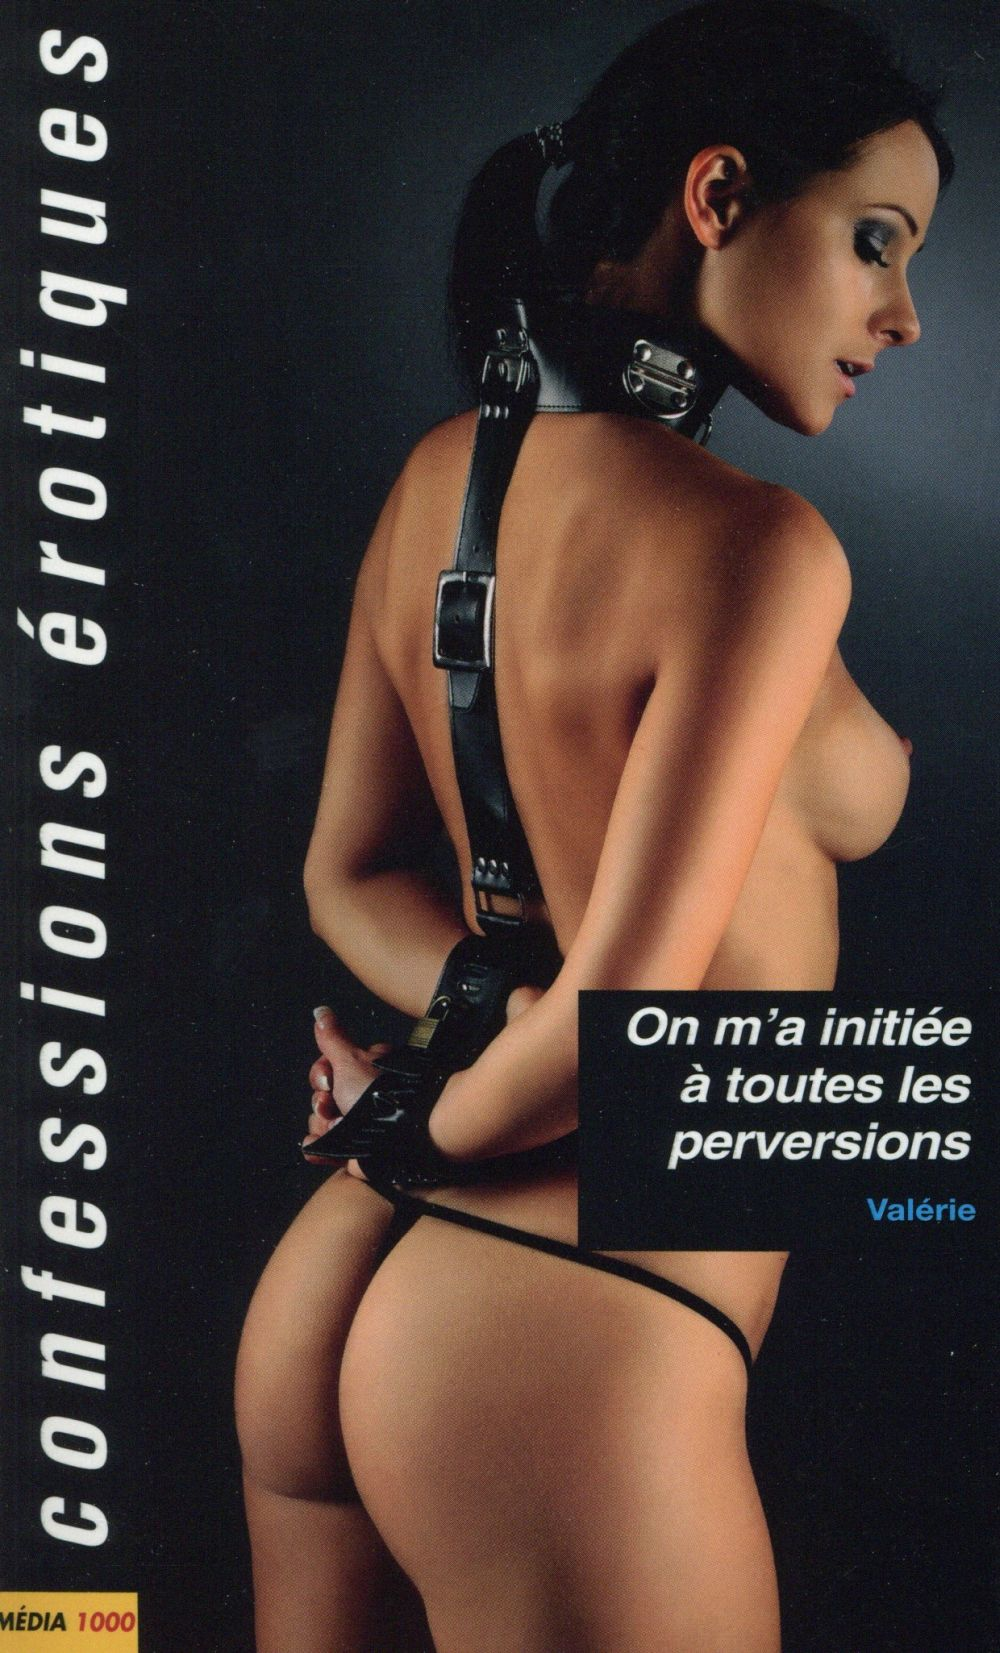 ON M'A INITIEE A TOUTES LES PERVERSIONS